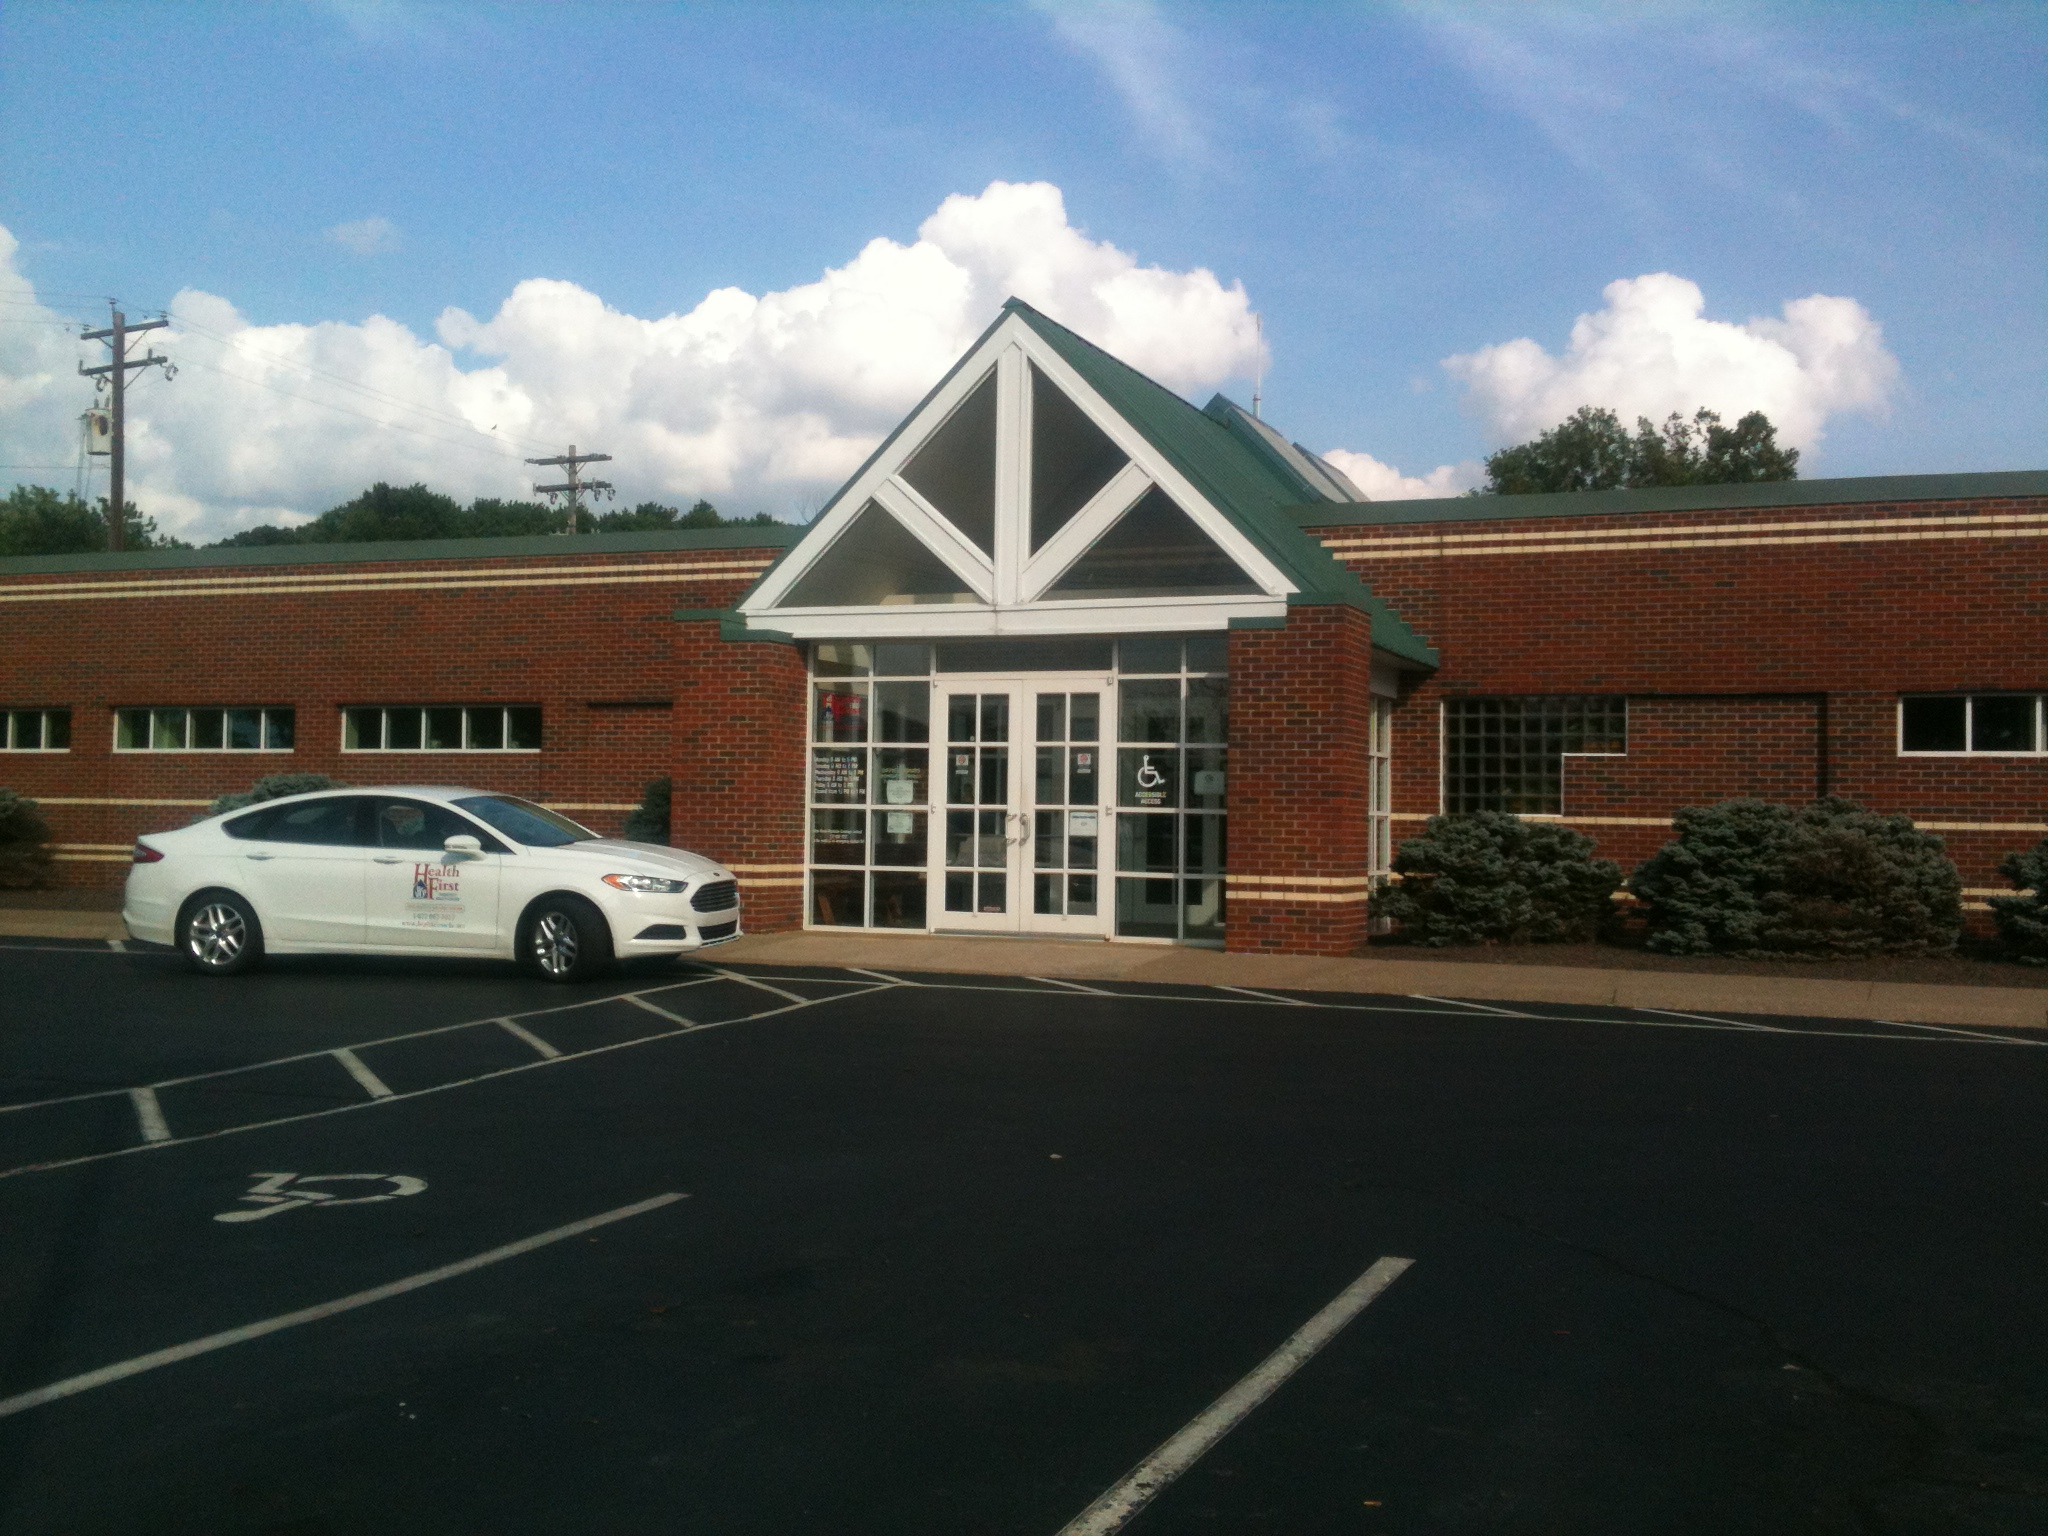 Clinic Images - Kentucky Primary Care ociation, KY on precision air conditioning, precision door logo, white patio doors, precision cabinets, white storm doors, precision overhead door, garaga doors,